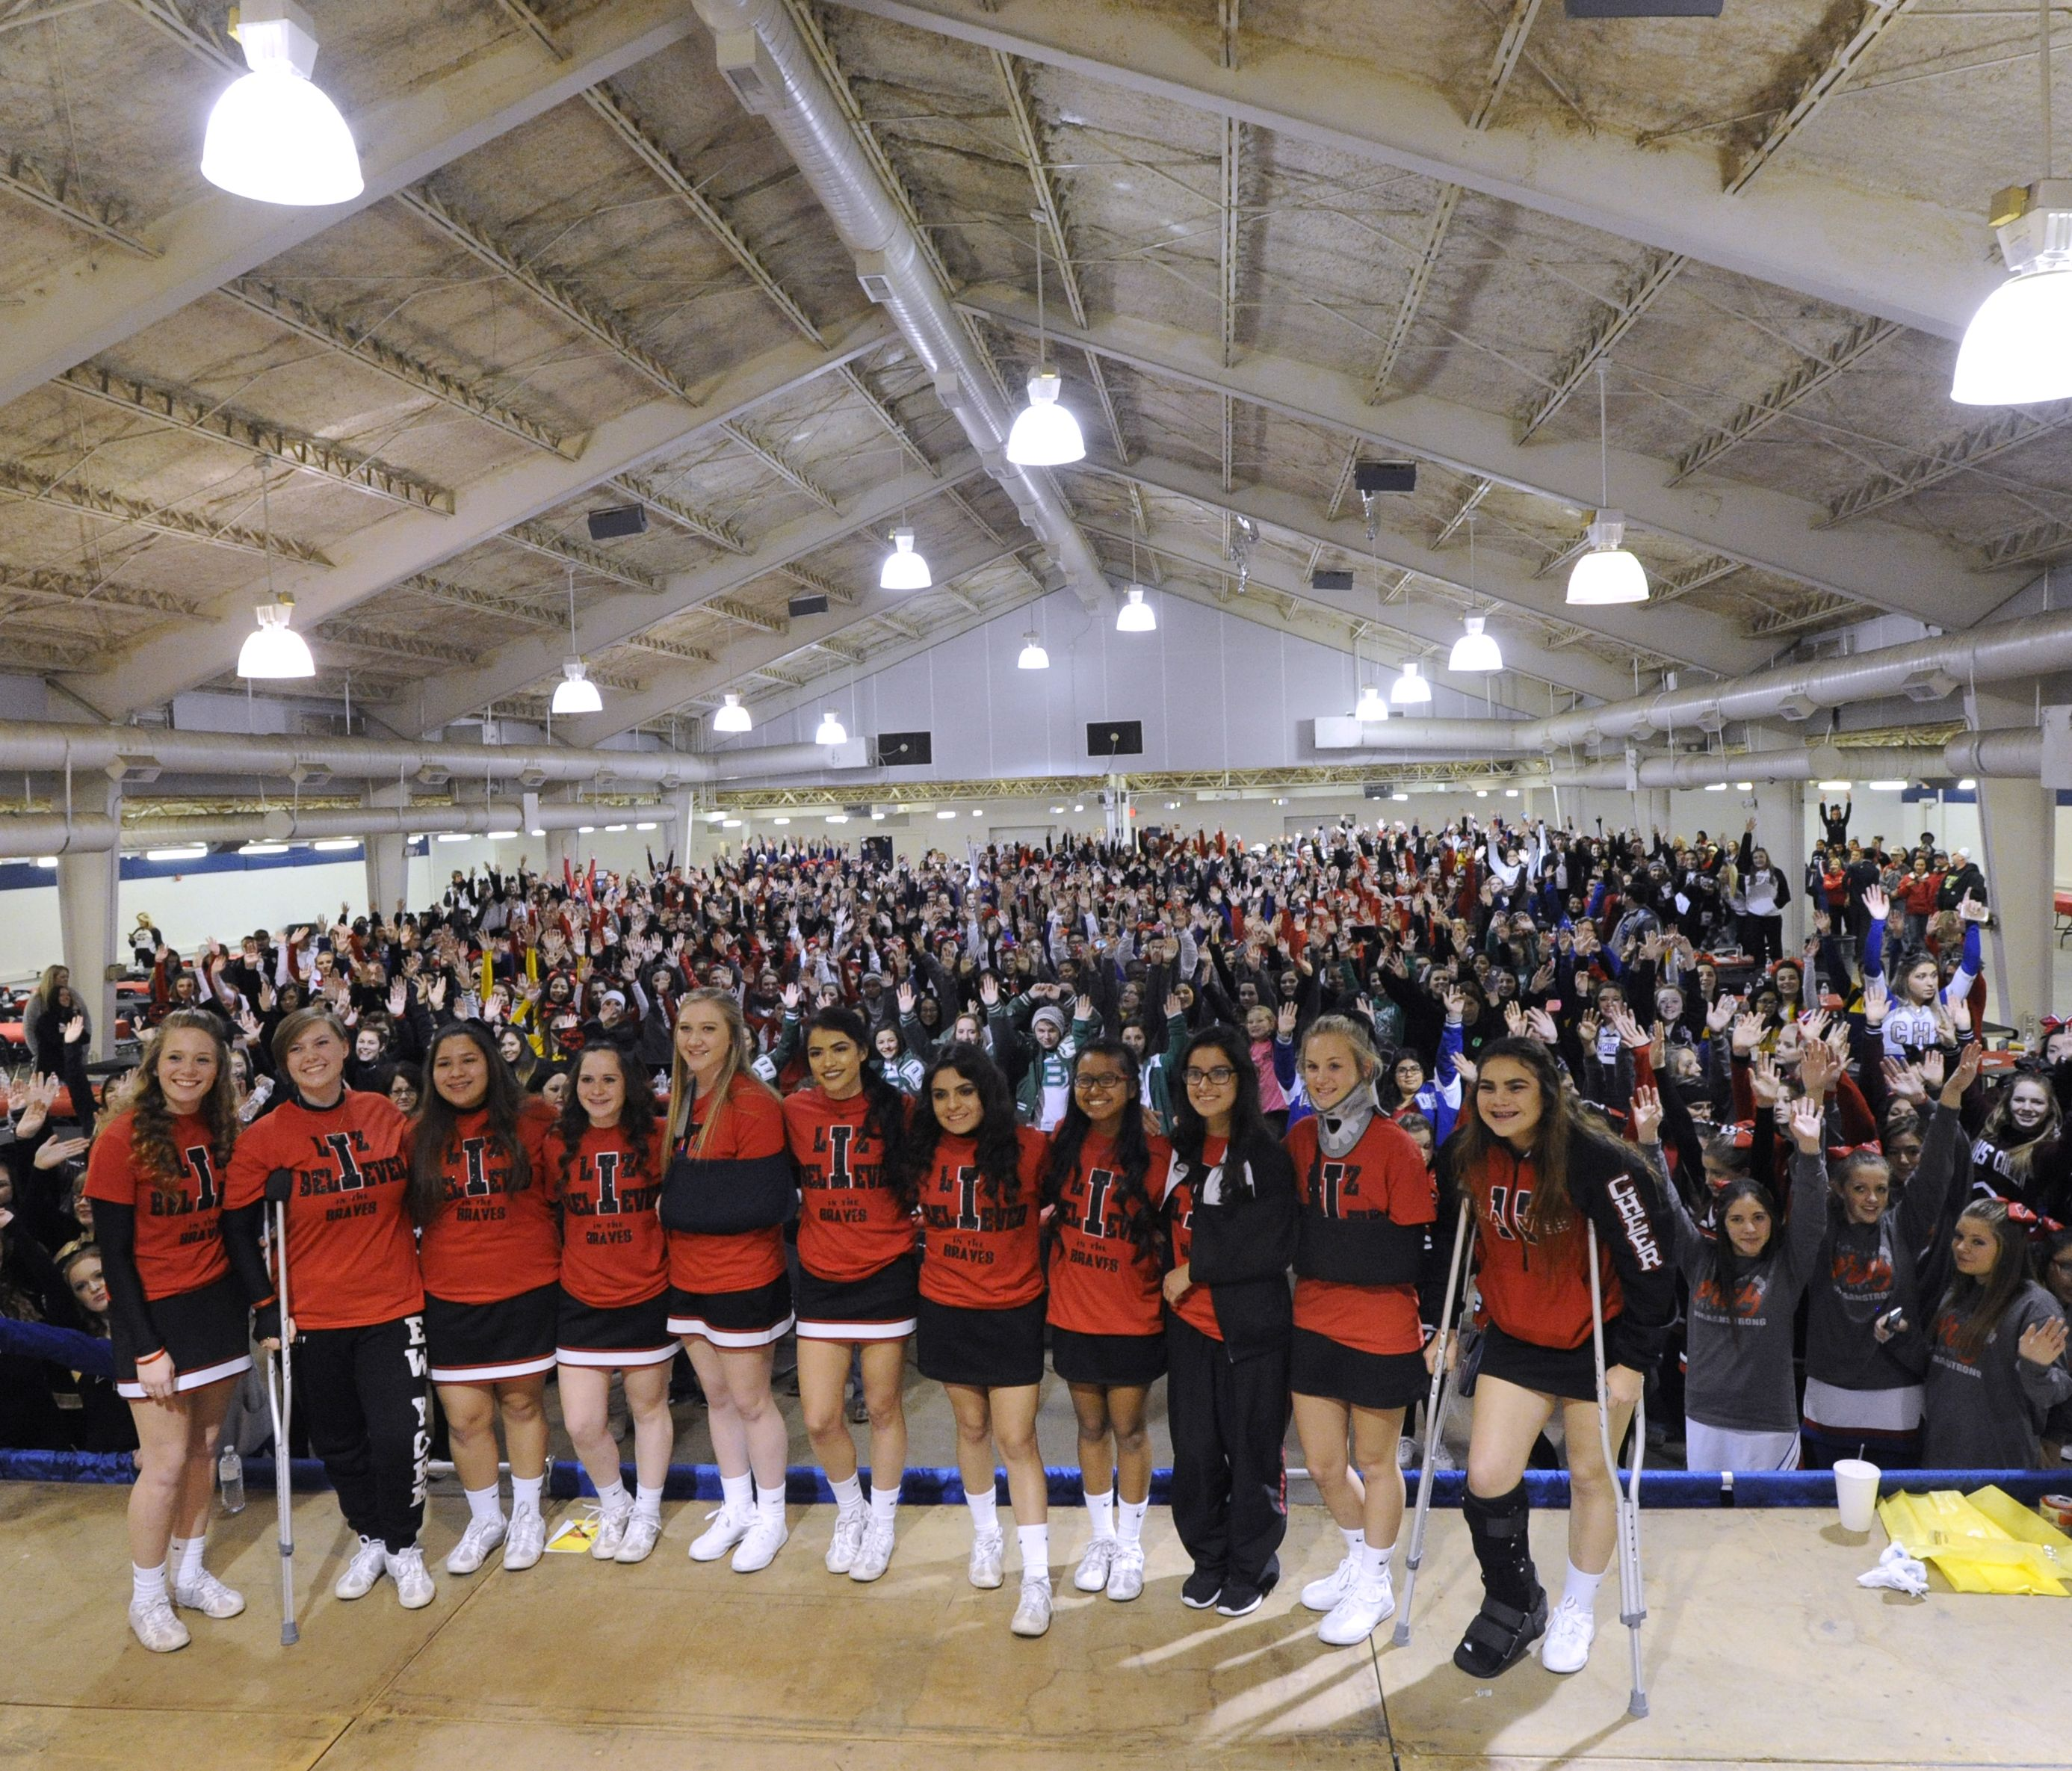 The Iraan High School cheerleaders gather for a group picture with the hundreds of other West Texas cheerleaders that came to support them (Photo: Ronald W. Erdrich, Abilene Reporter News)